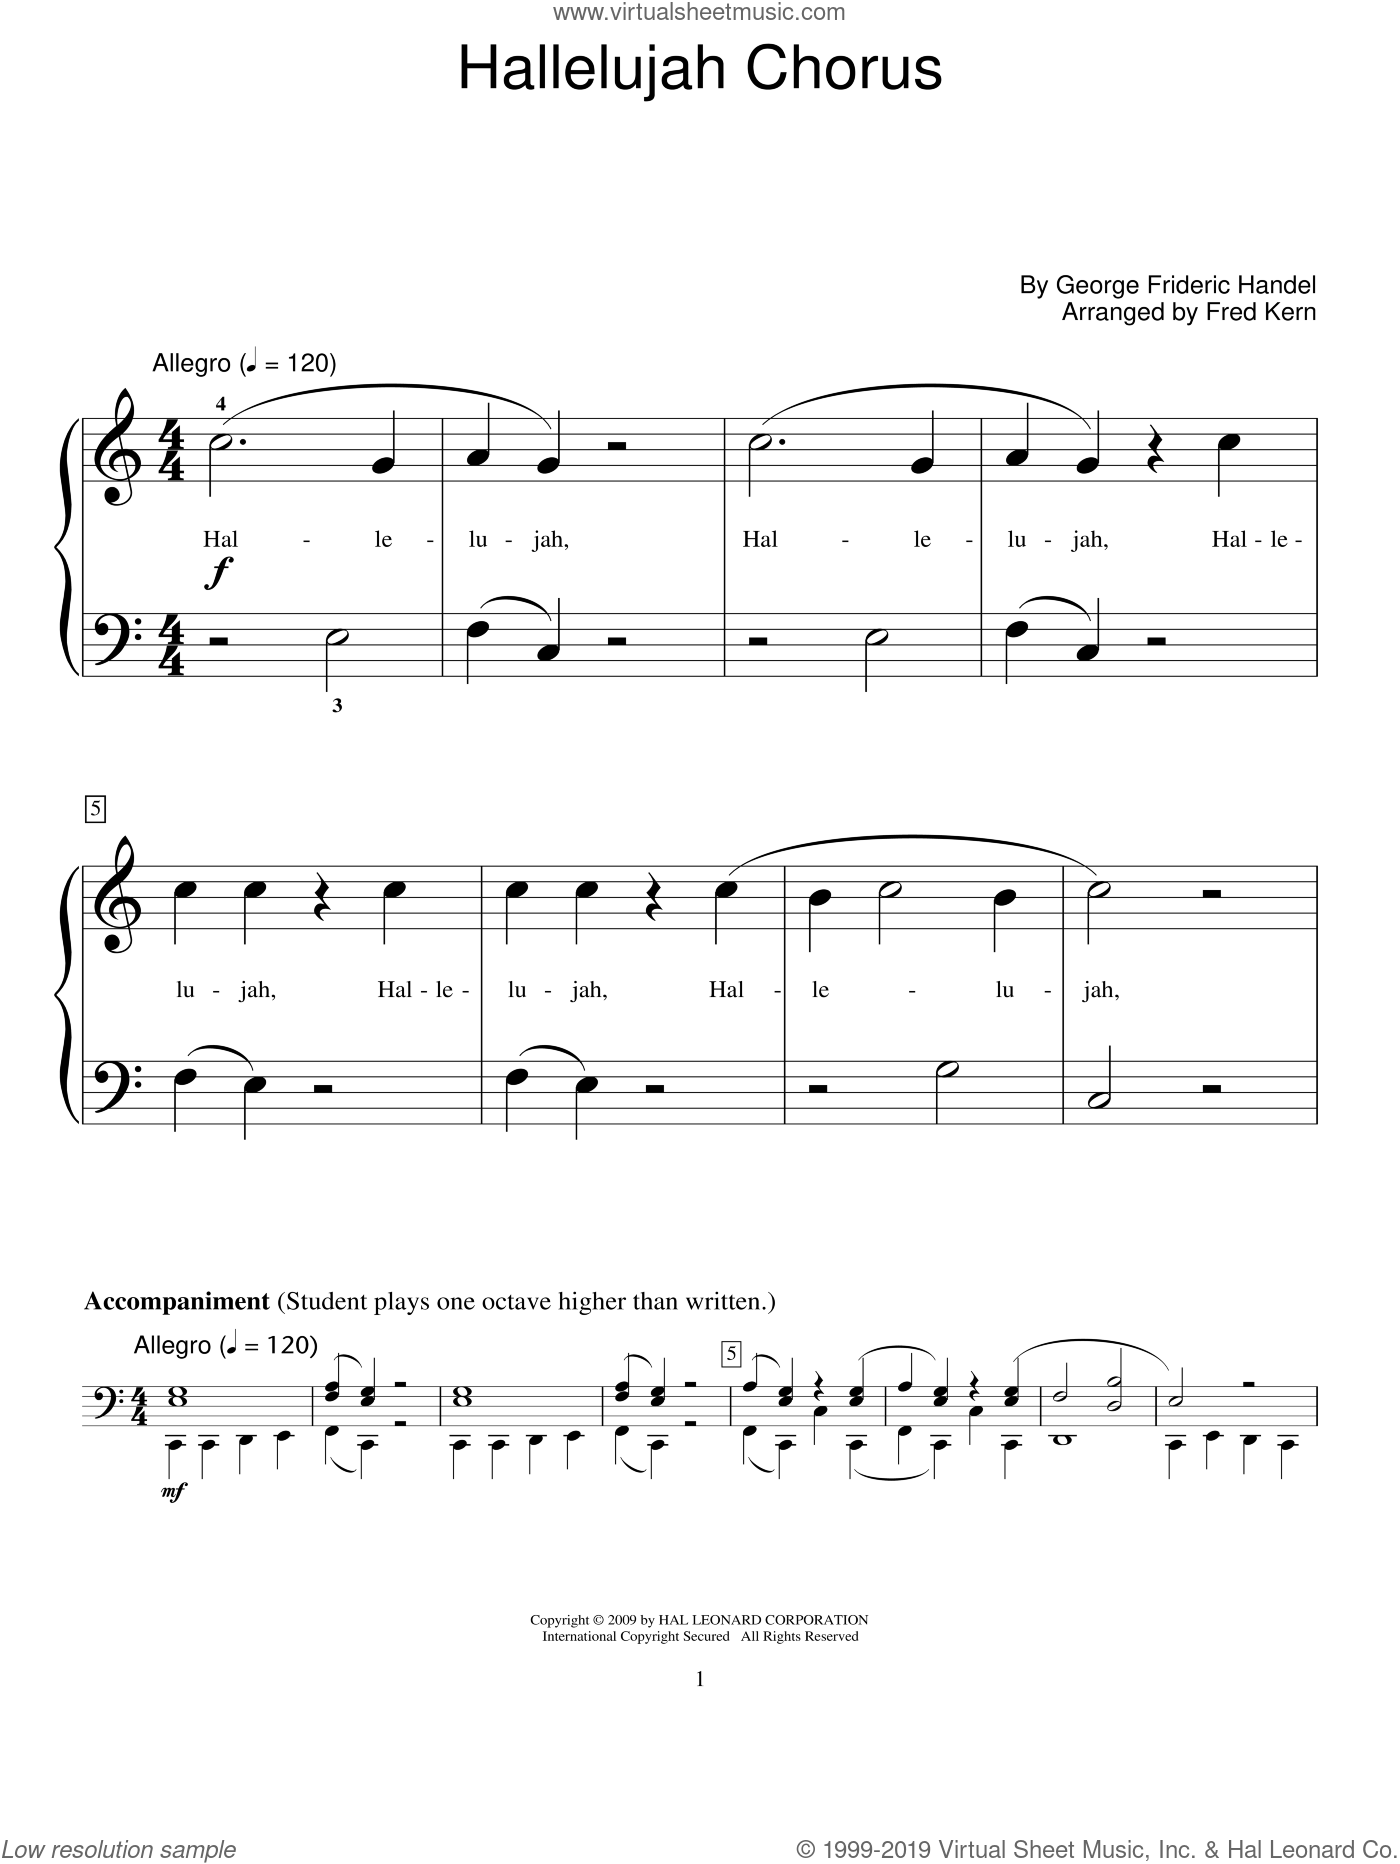 Hallelujah Chorus sheet music for piano solo (elementary) by George Frideric Handel, Fred Kern and Miscellaneous. Score Image Preview.